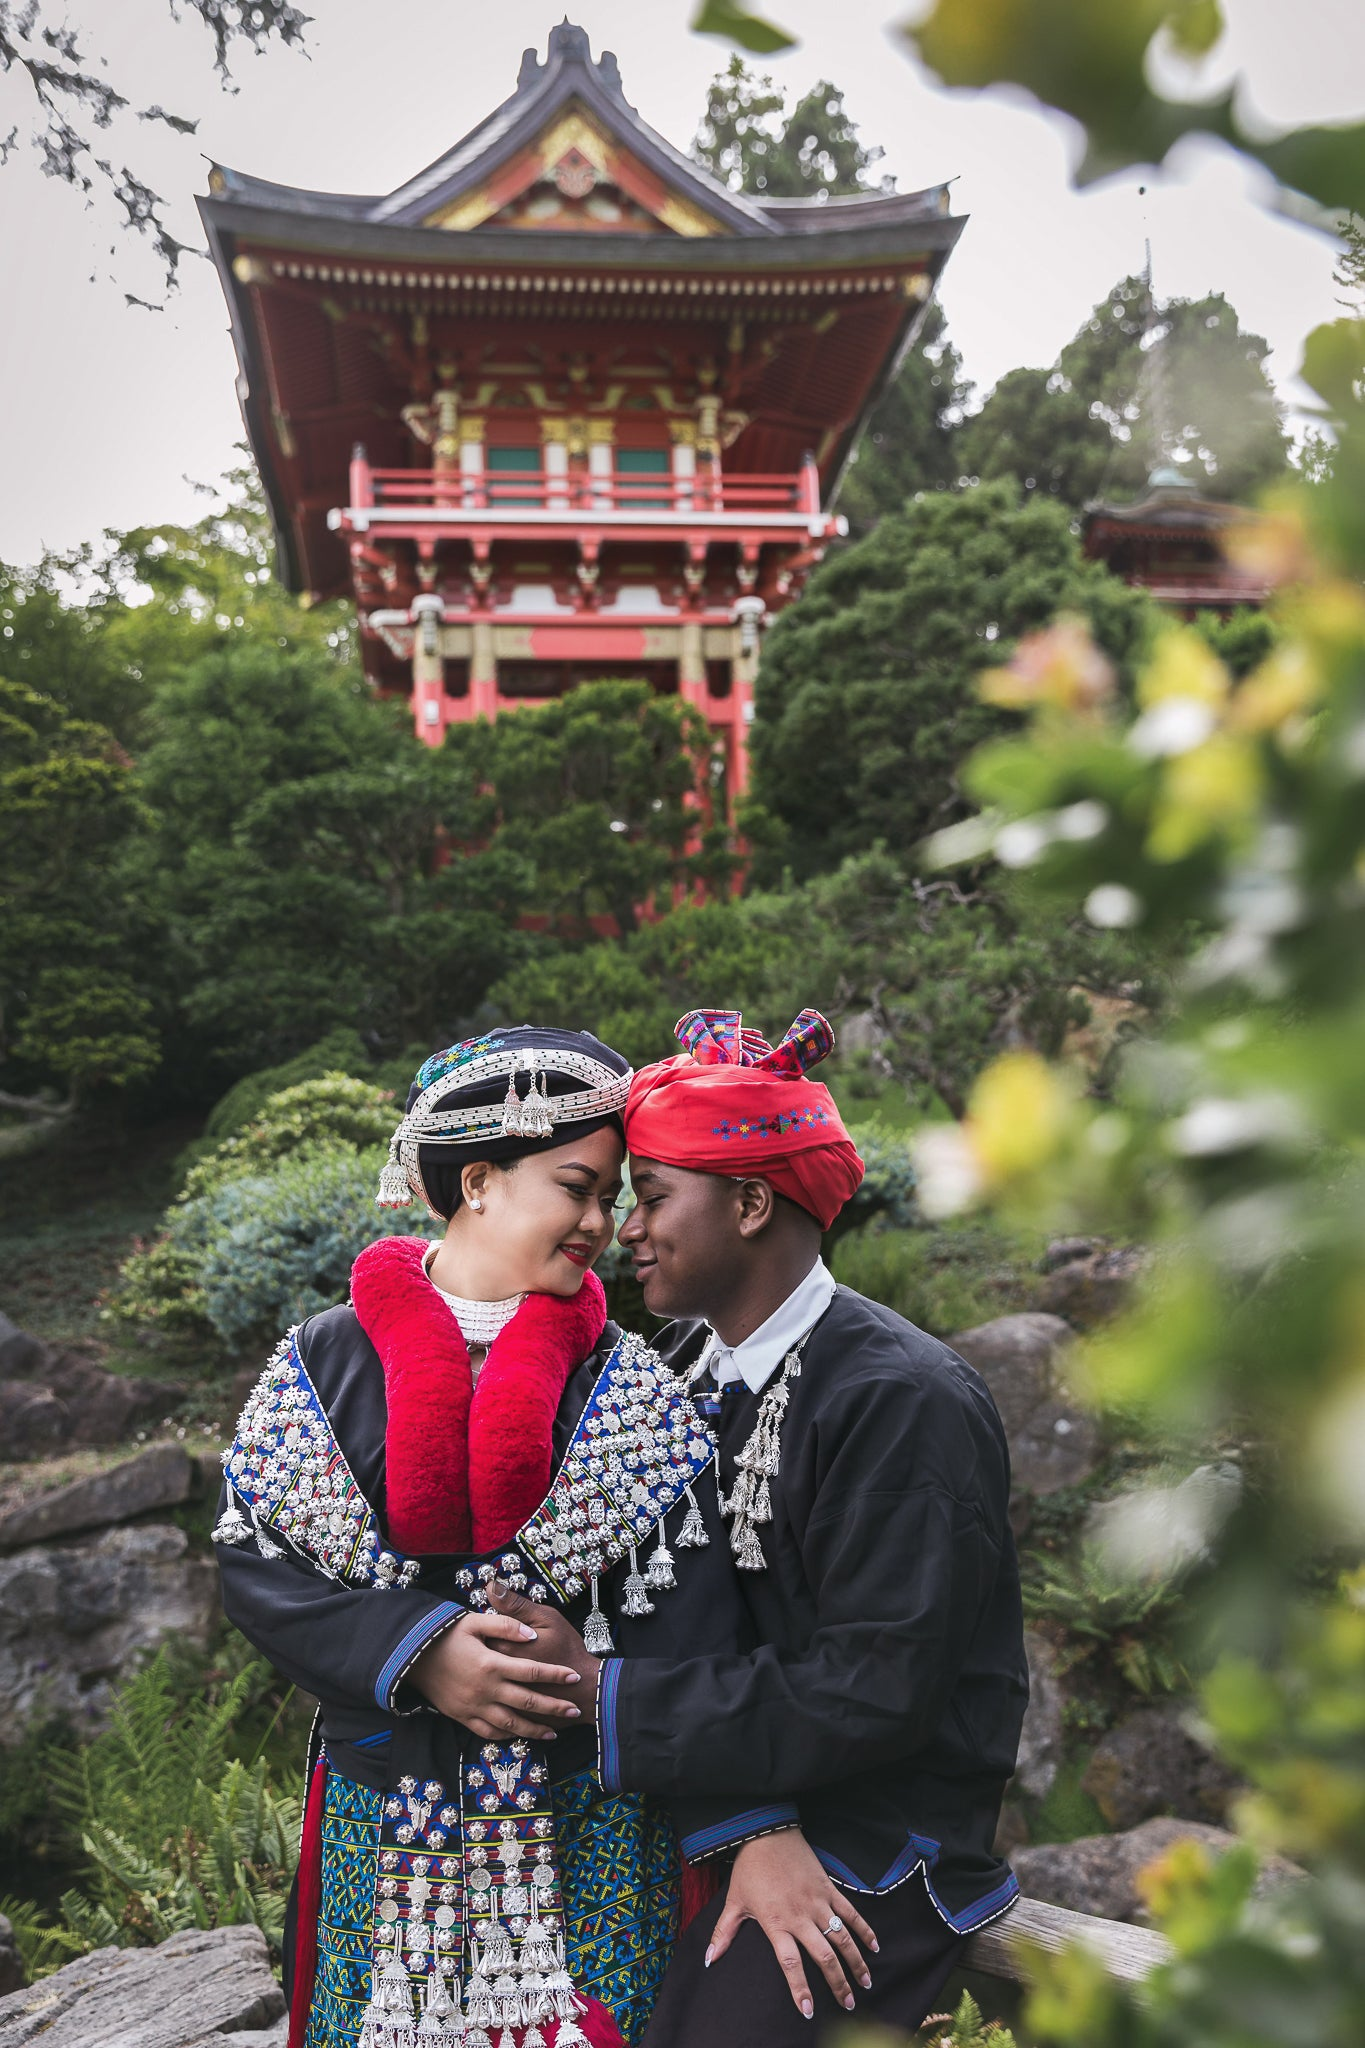 JAPANESE GARDEN SF | When Culture Blends, Wearing Their Traditional Mien Outfit